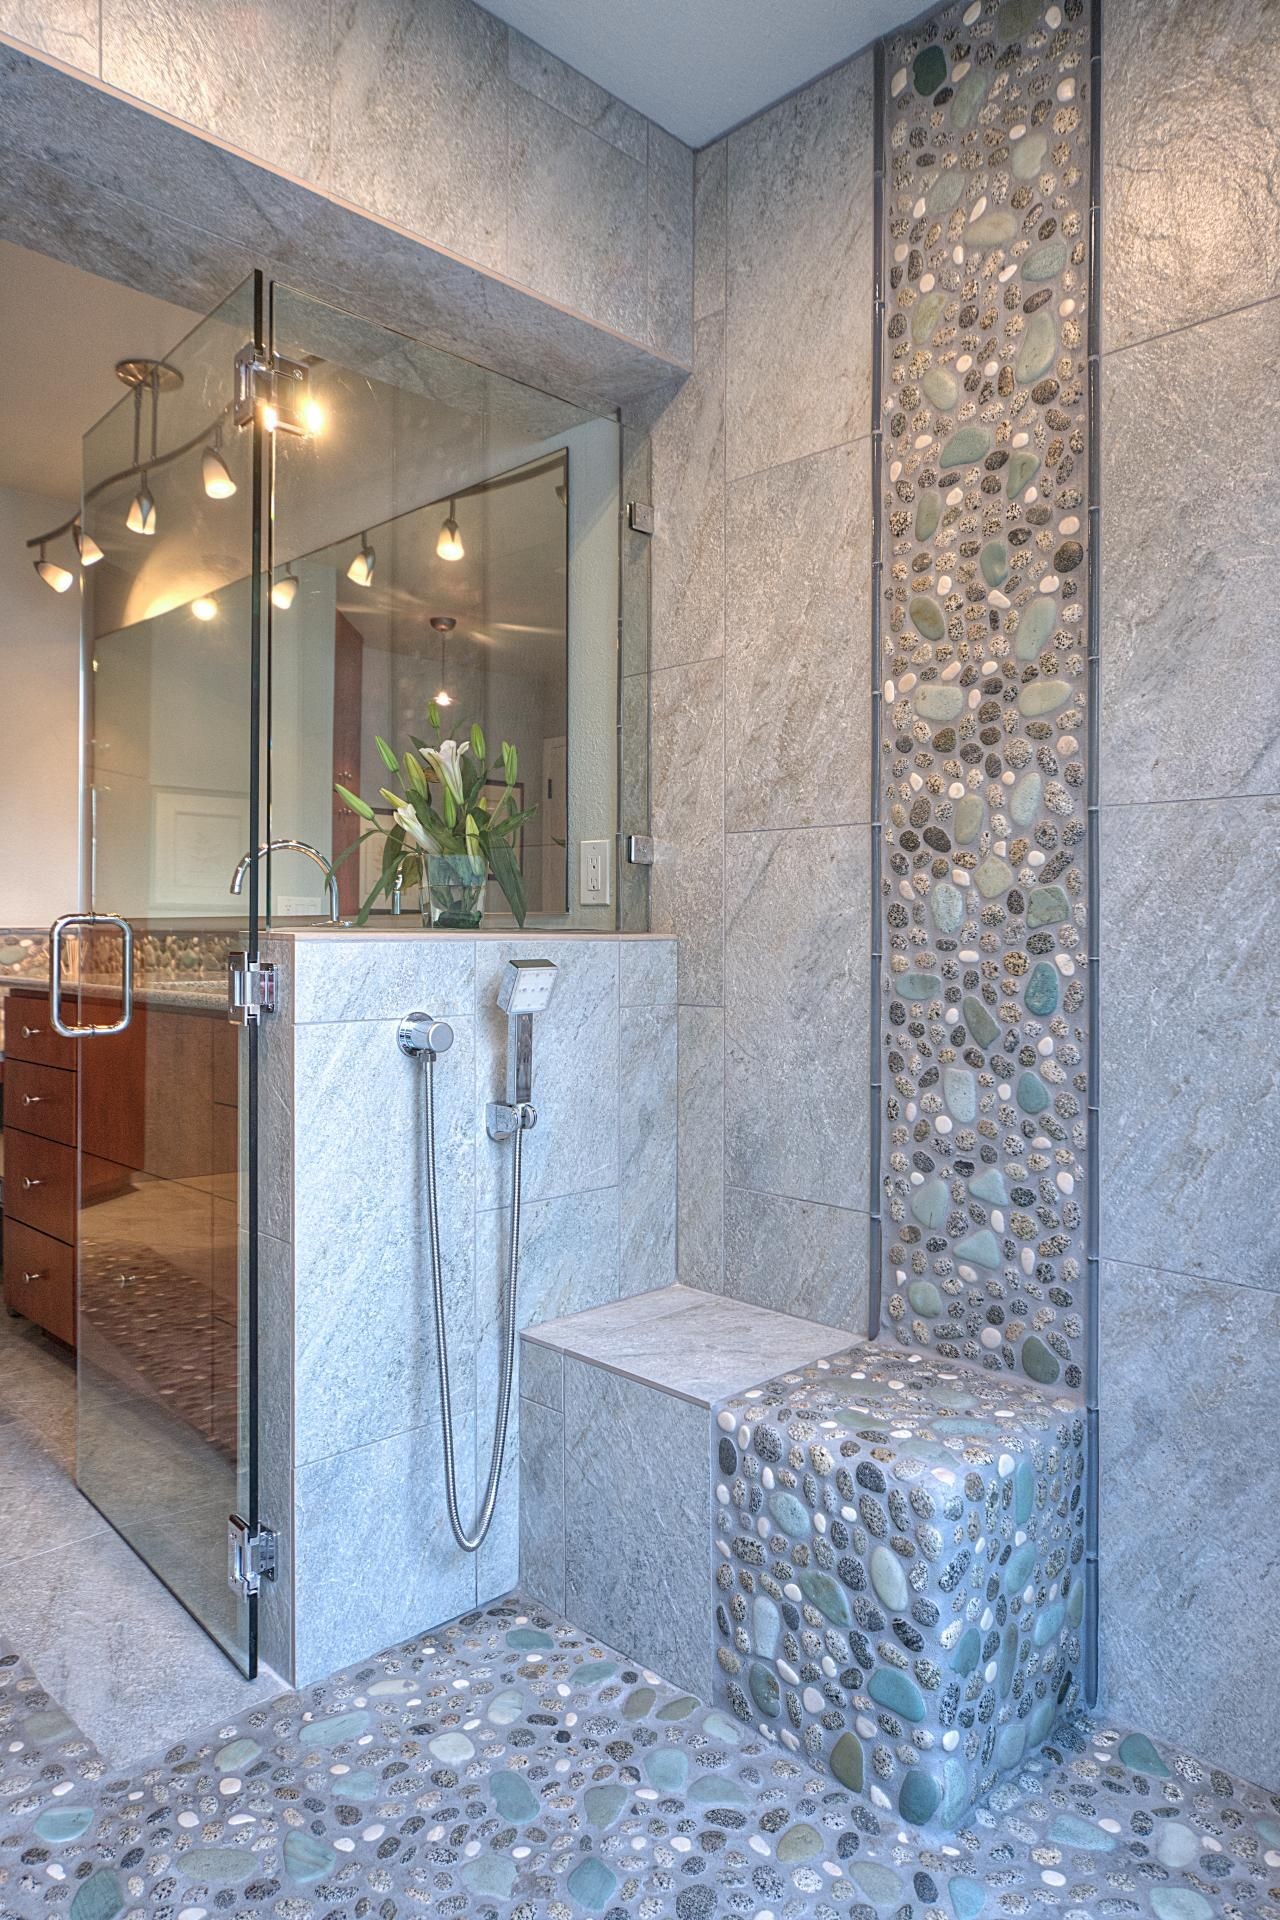 Waterfall Showers Designs 2015 Nkba People 39s Pick Best Bathroom Intérieur